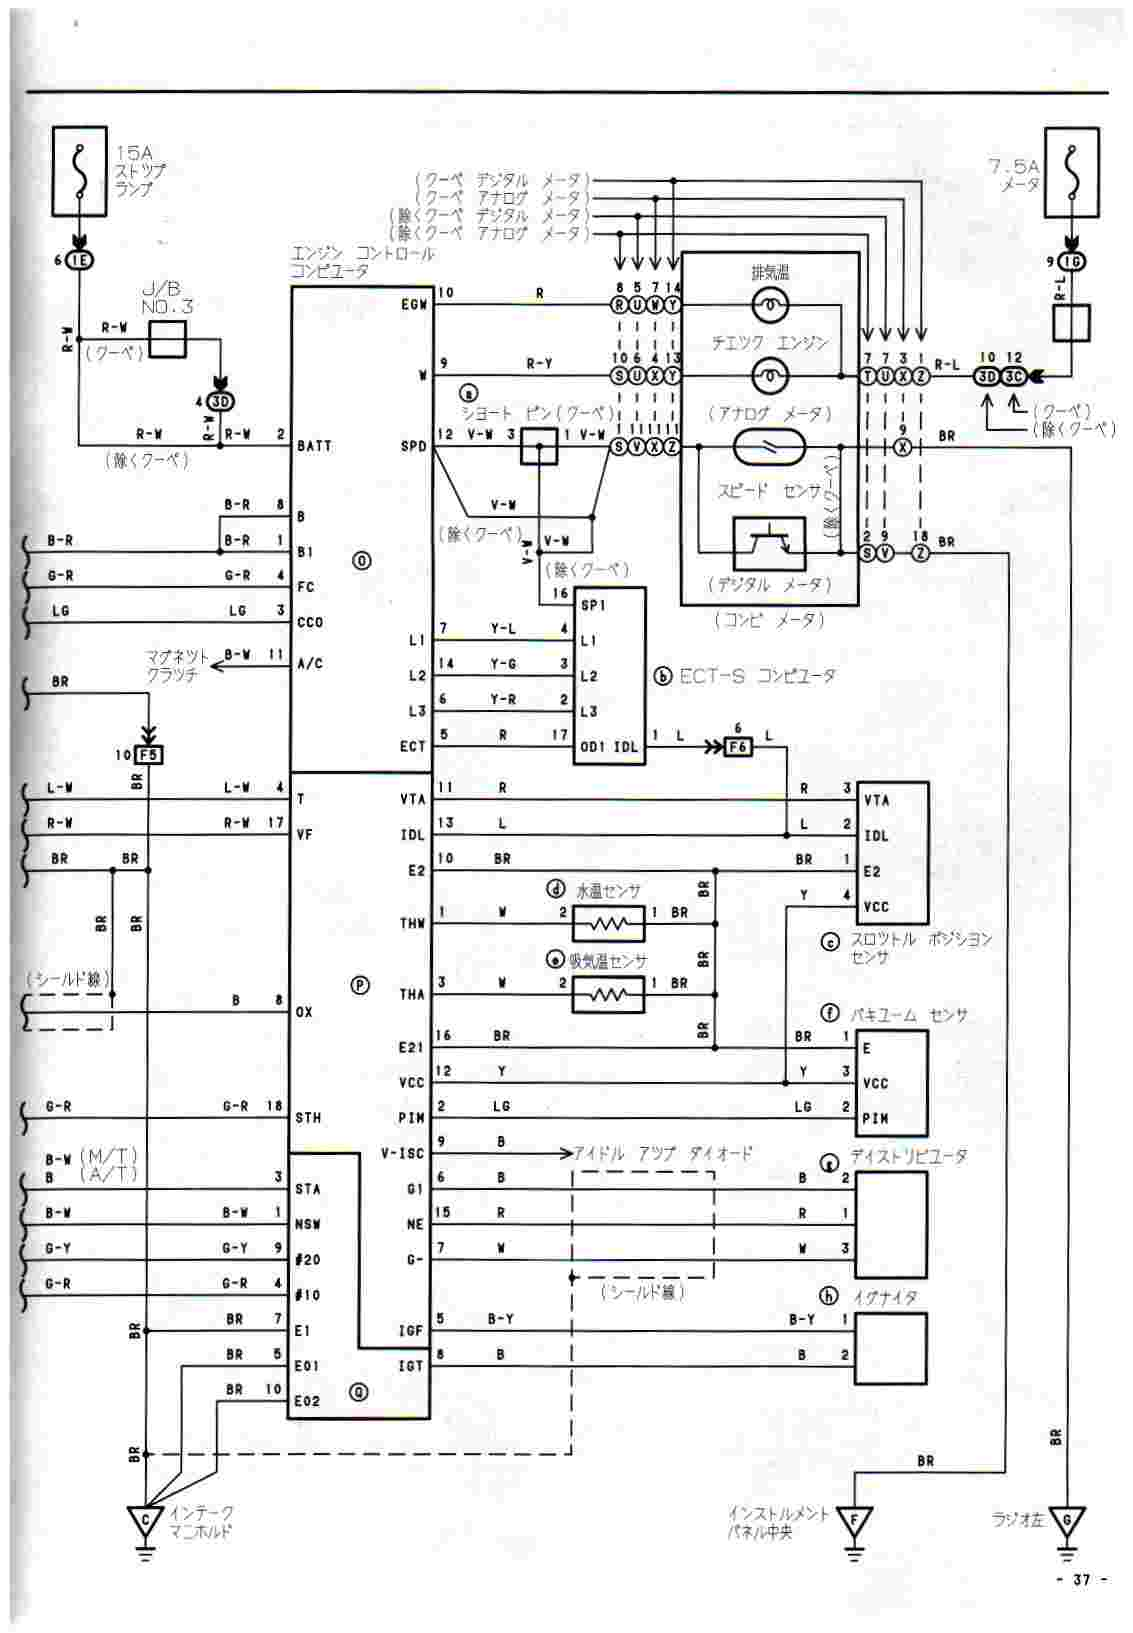 toyota ae111 wiring diagram a of microscope parts ooh latest corolla info n pic keretalama